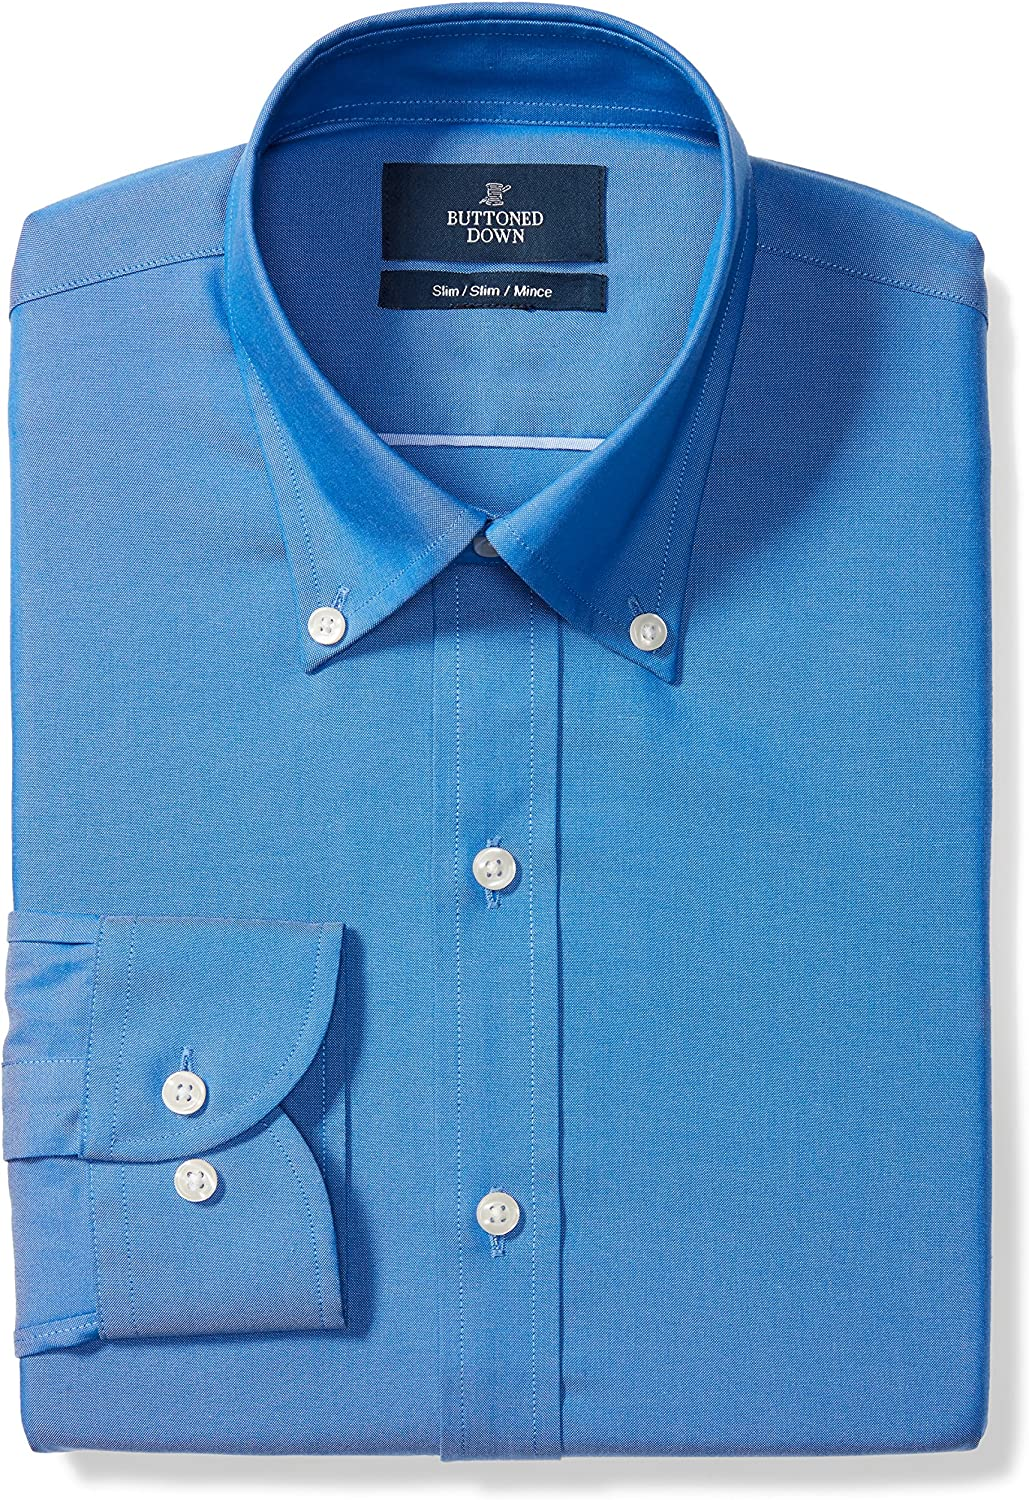 Buttoned Down Men's Slim Fit Button Superior Collar Solid Max 82% OFF Shirt Dress